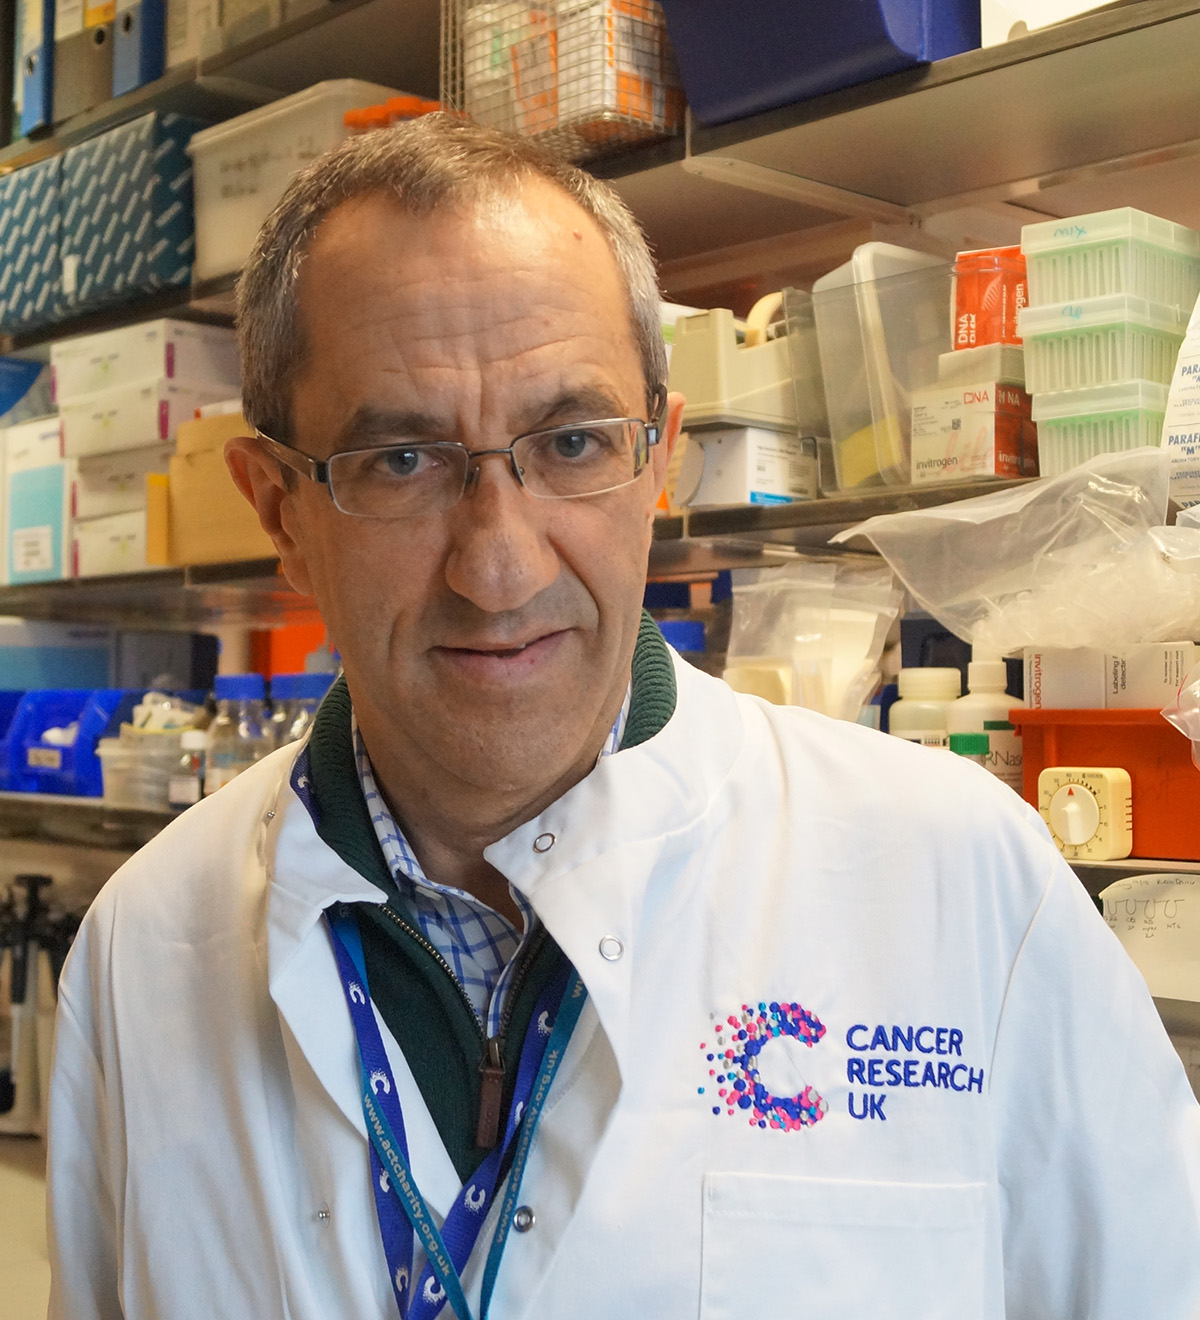 Professor Carlos Caldas leads the Breast Cancer Programme at the CRUK Cambridge Centre